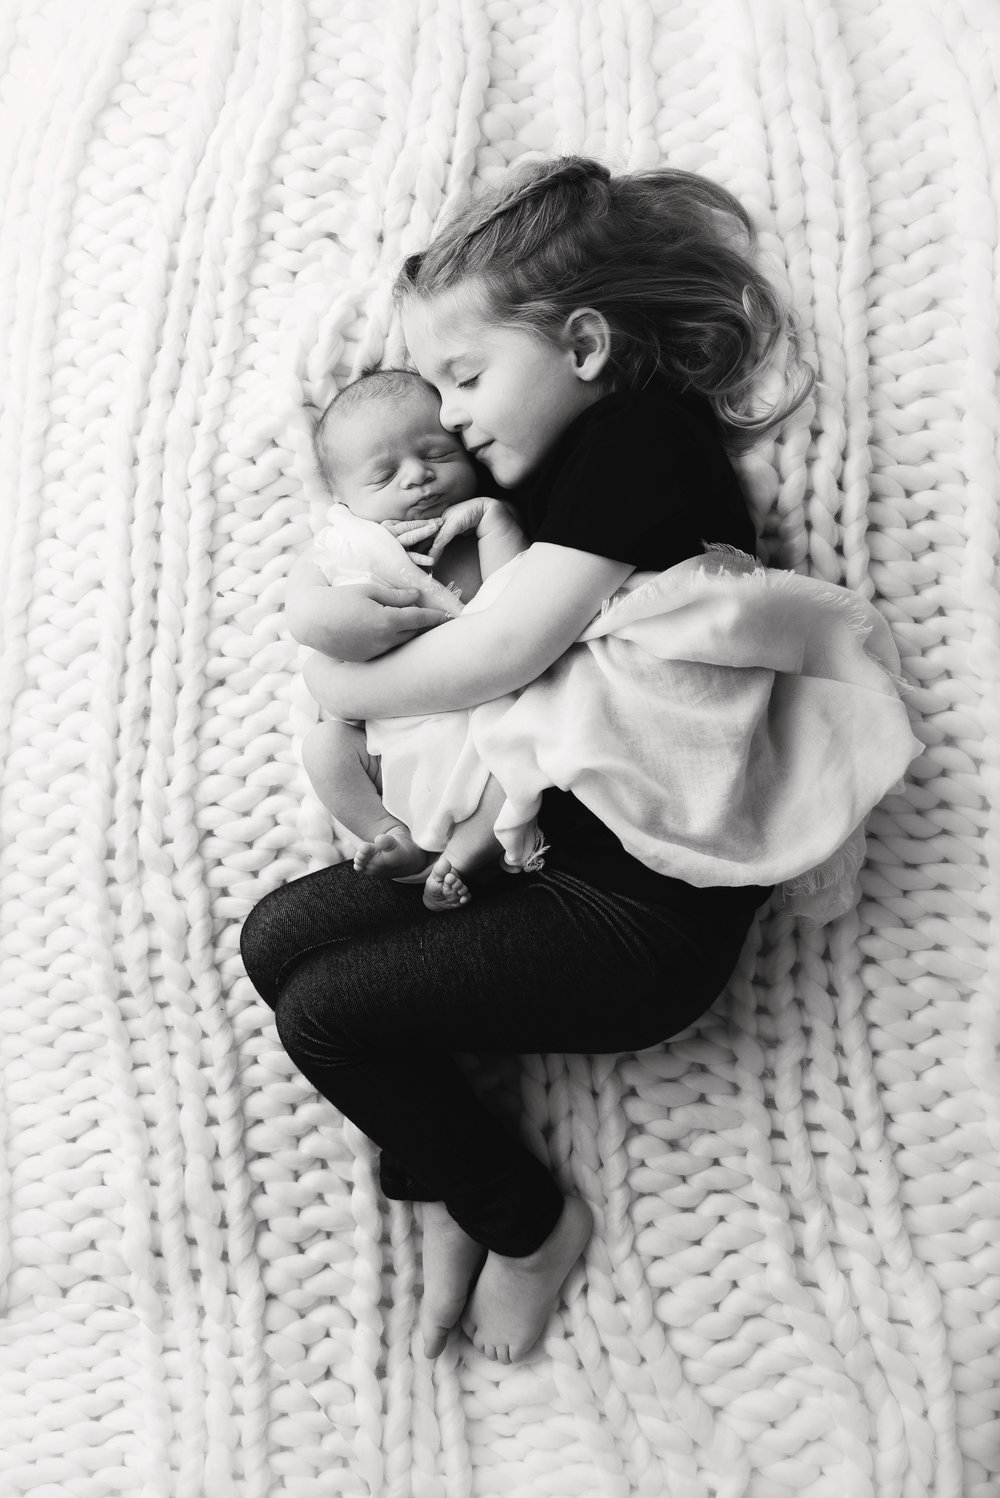 st-louis-newborn-photographer-big-sister-holding-baby-brother-view-from-above-in-black-and-white.jpg